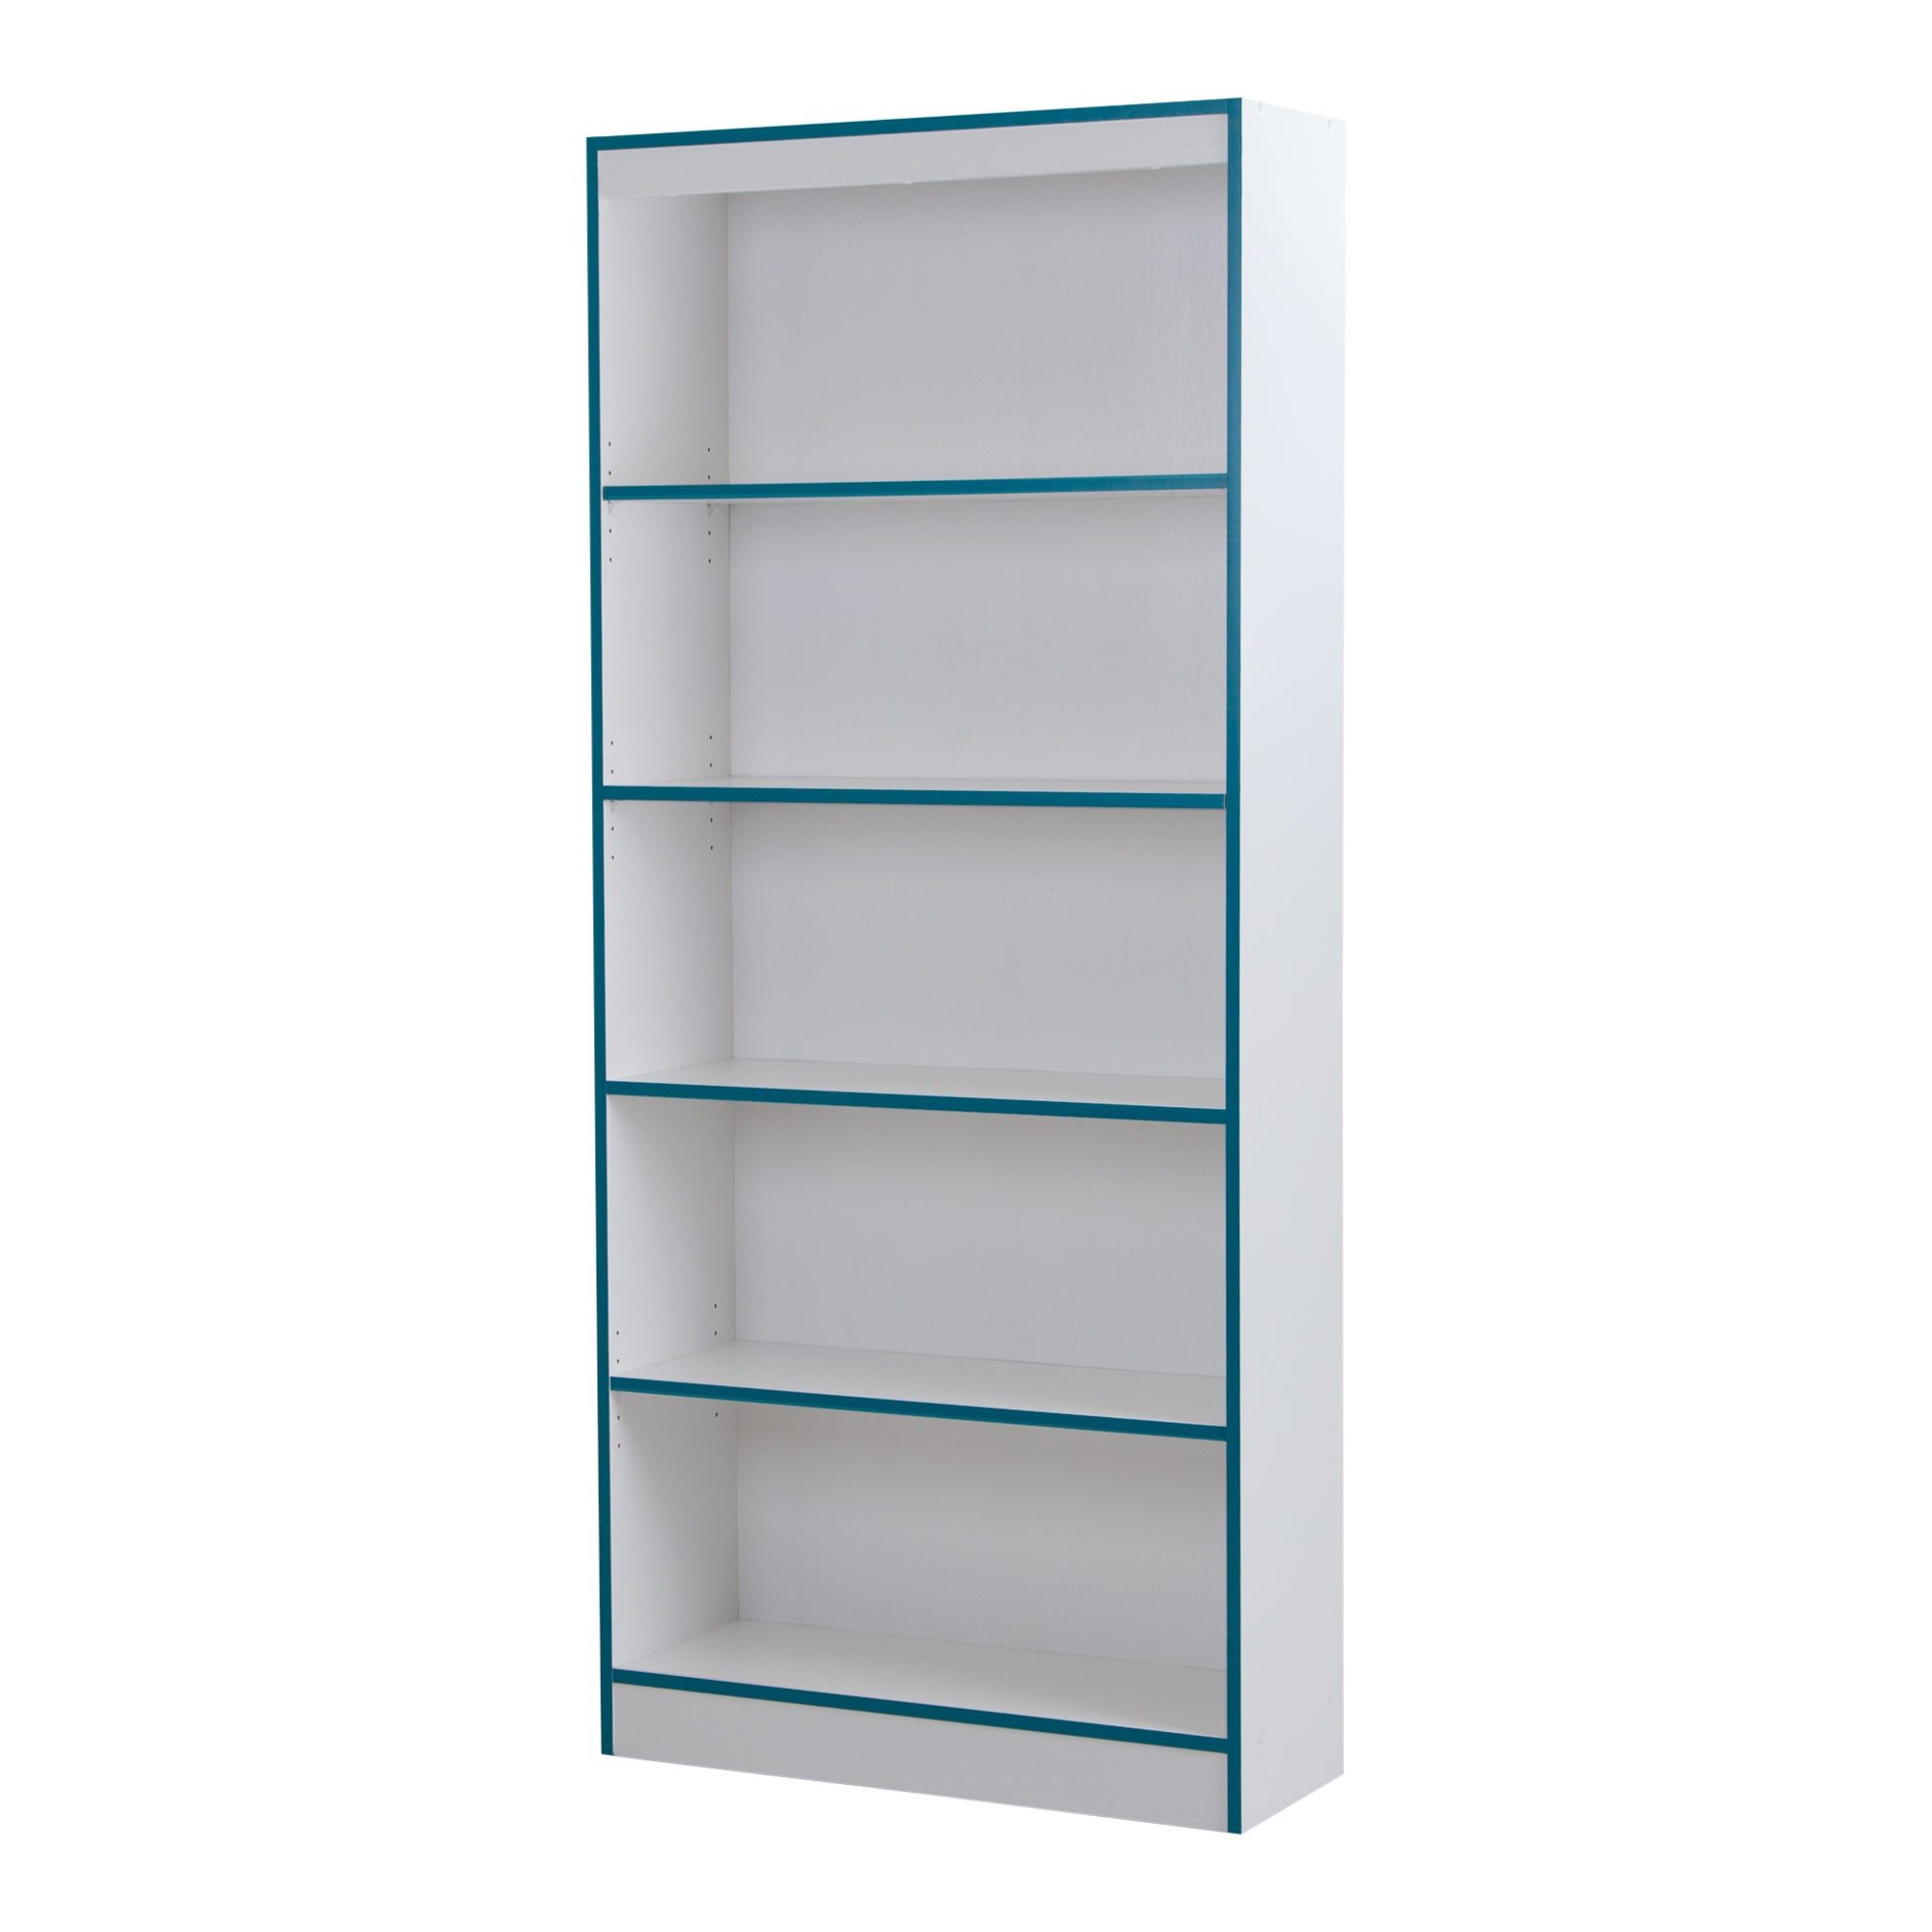 kmbd south commendable c full bookcase top folding uncategorized delicate superior collection outstanding dreadful home stylish ideas extraordinary inspiring shelf accessories bookcases of shore interior size wide wonderful depot furniture decoration french x excelle axess wood for quality your